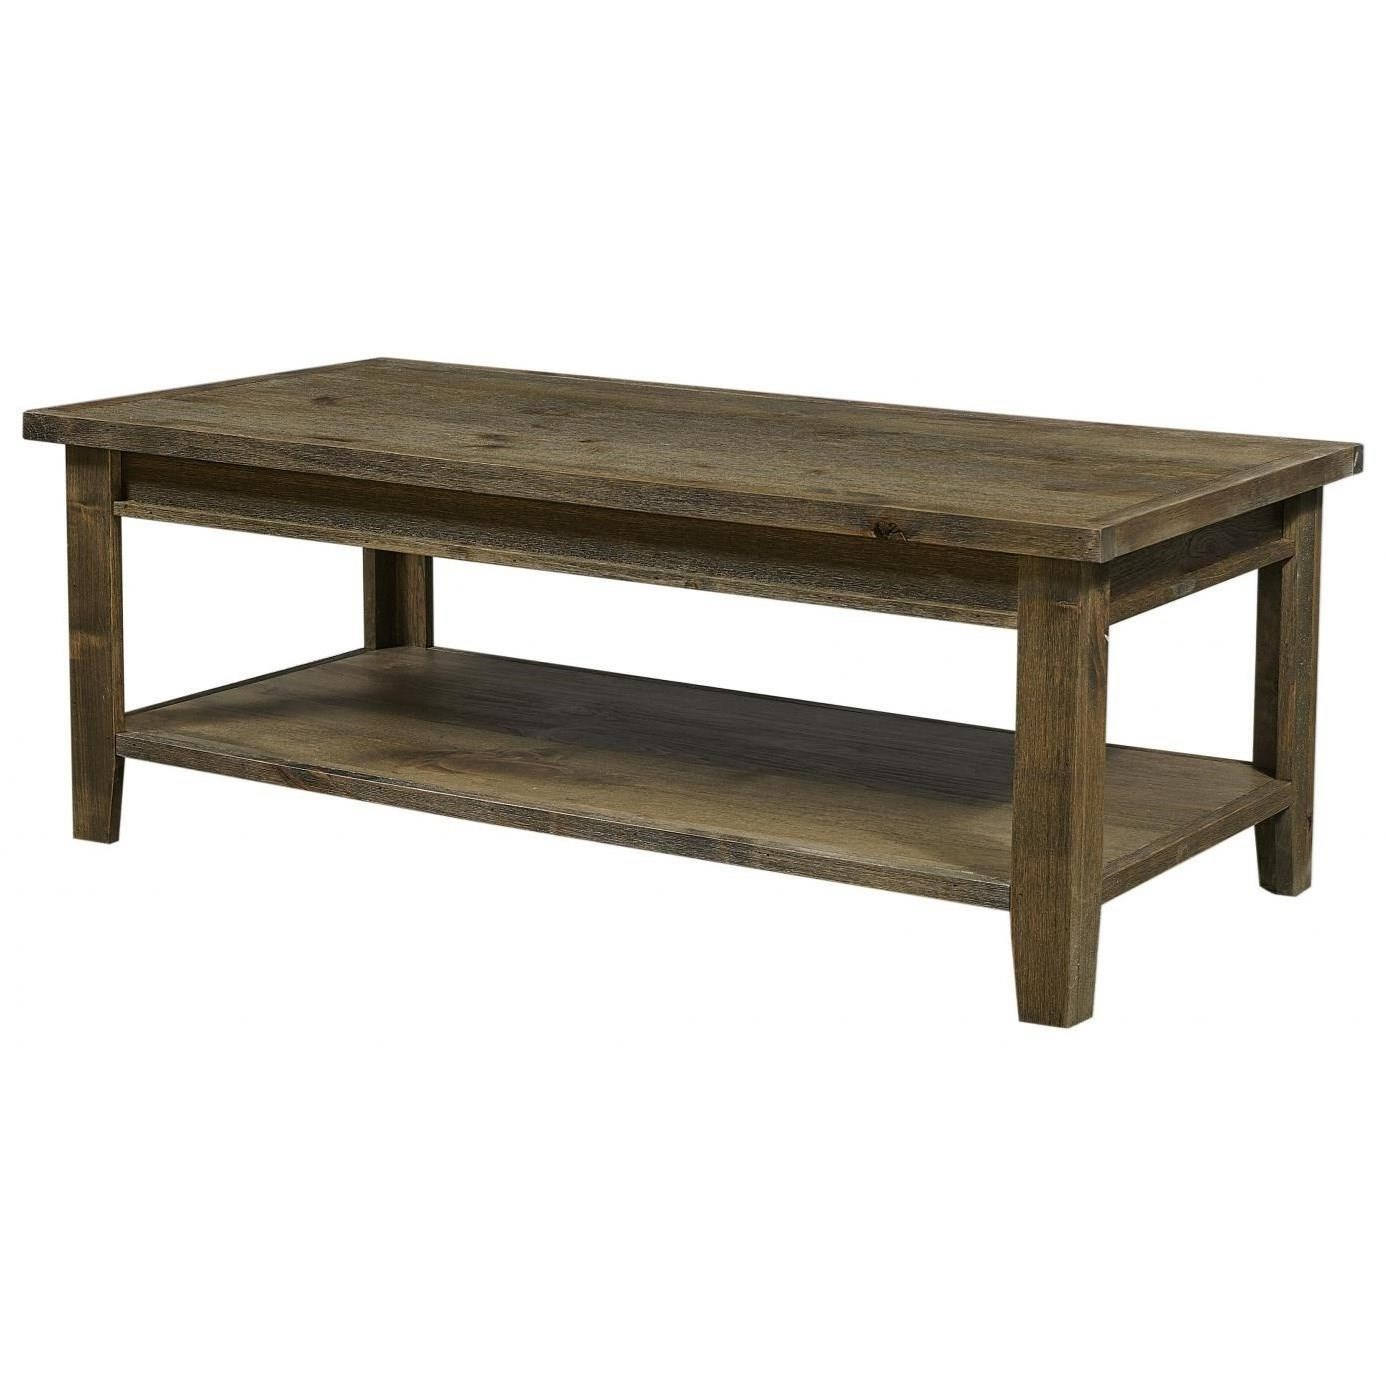 Rectangular Cocktail Table with Shelf